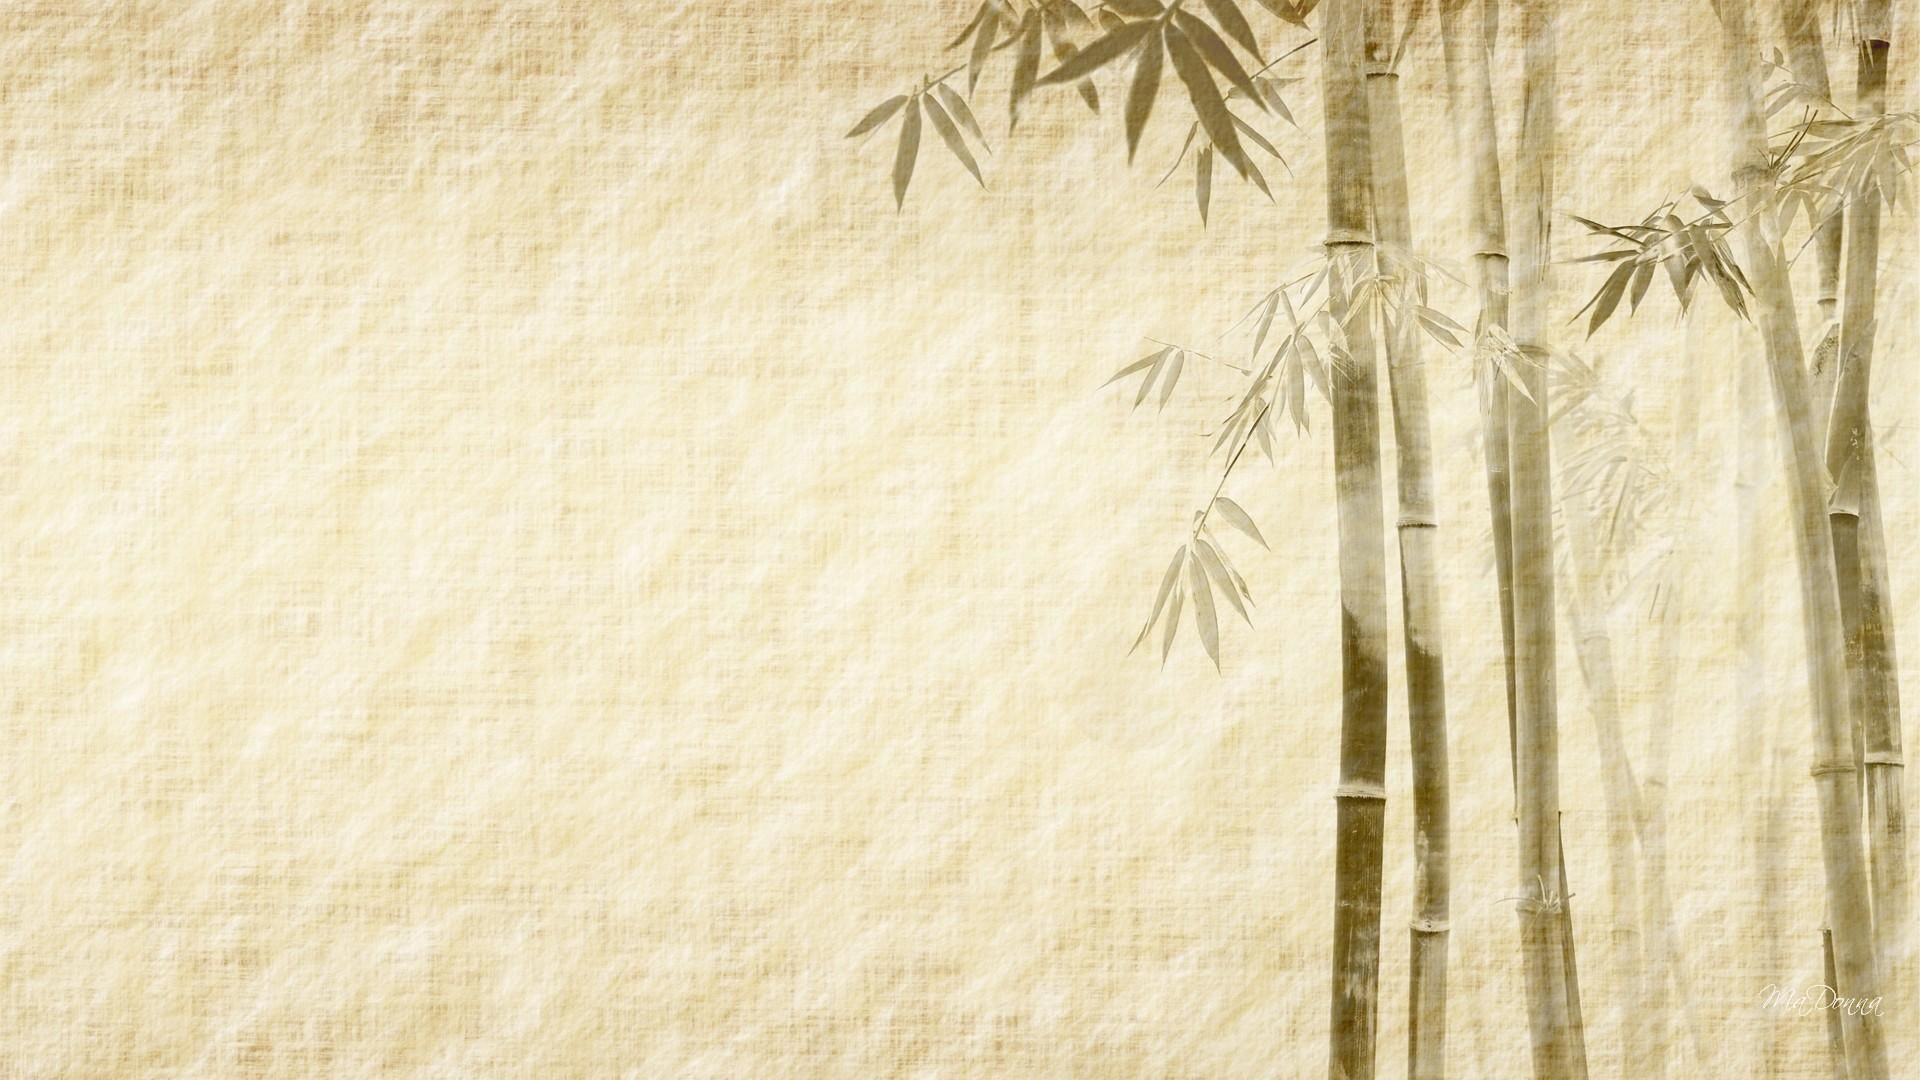 Desktop hd bamboo wallpapers elegant textures and works for Simple elegant wallpaper